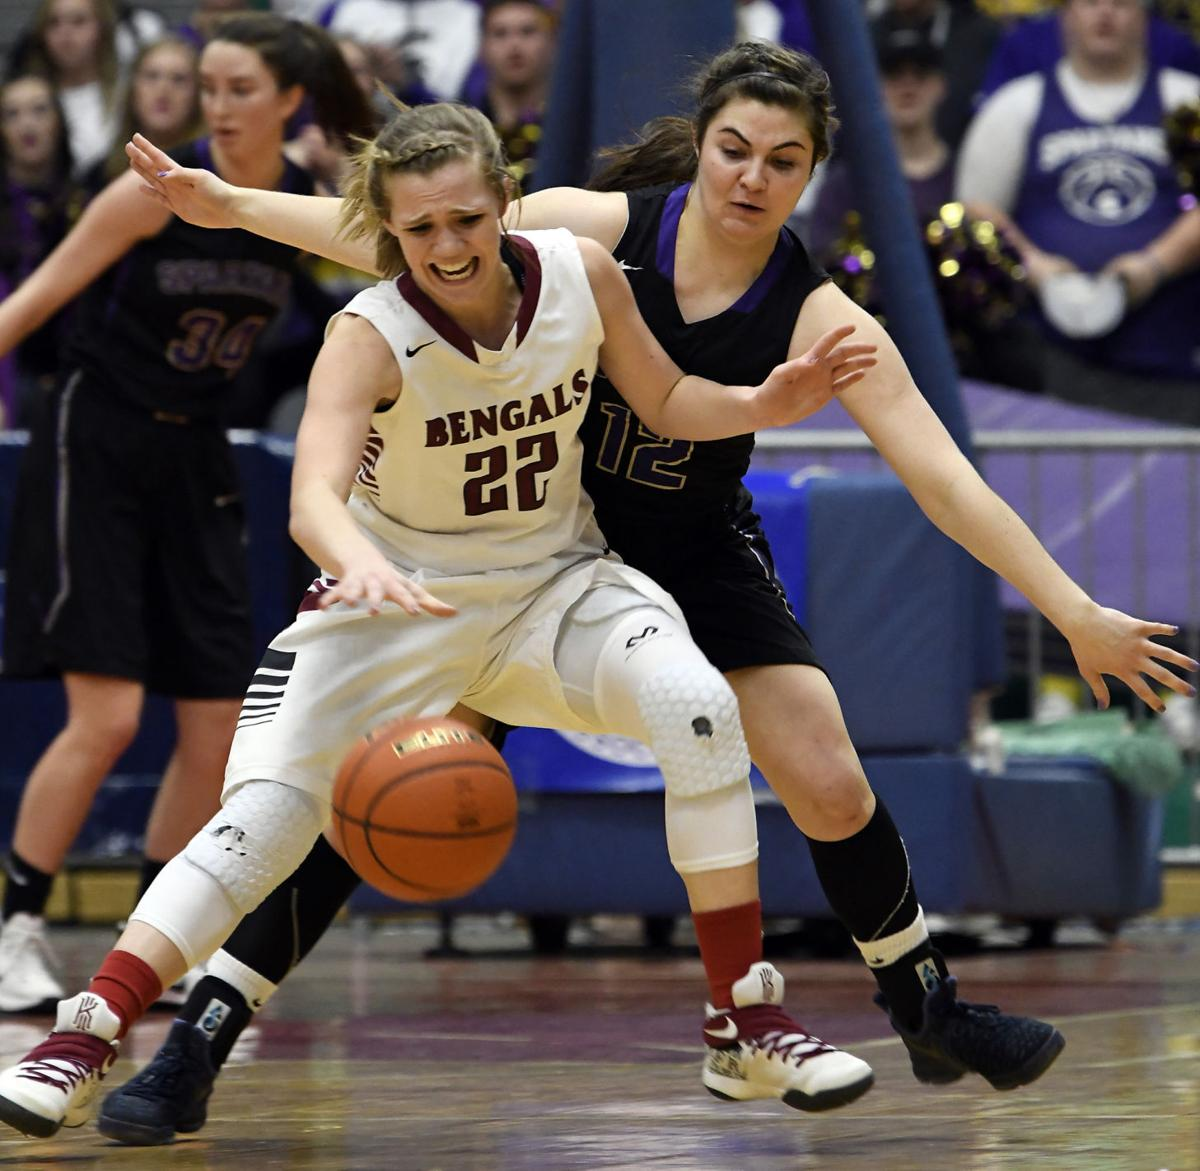 sentinel butte girls Bc misses opportunities in 6-3 loss to hamilton four perfect at trap league sentinel boys, girls sweep at butte high meet scarlets walk off miners.